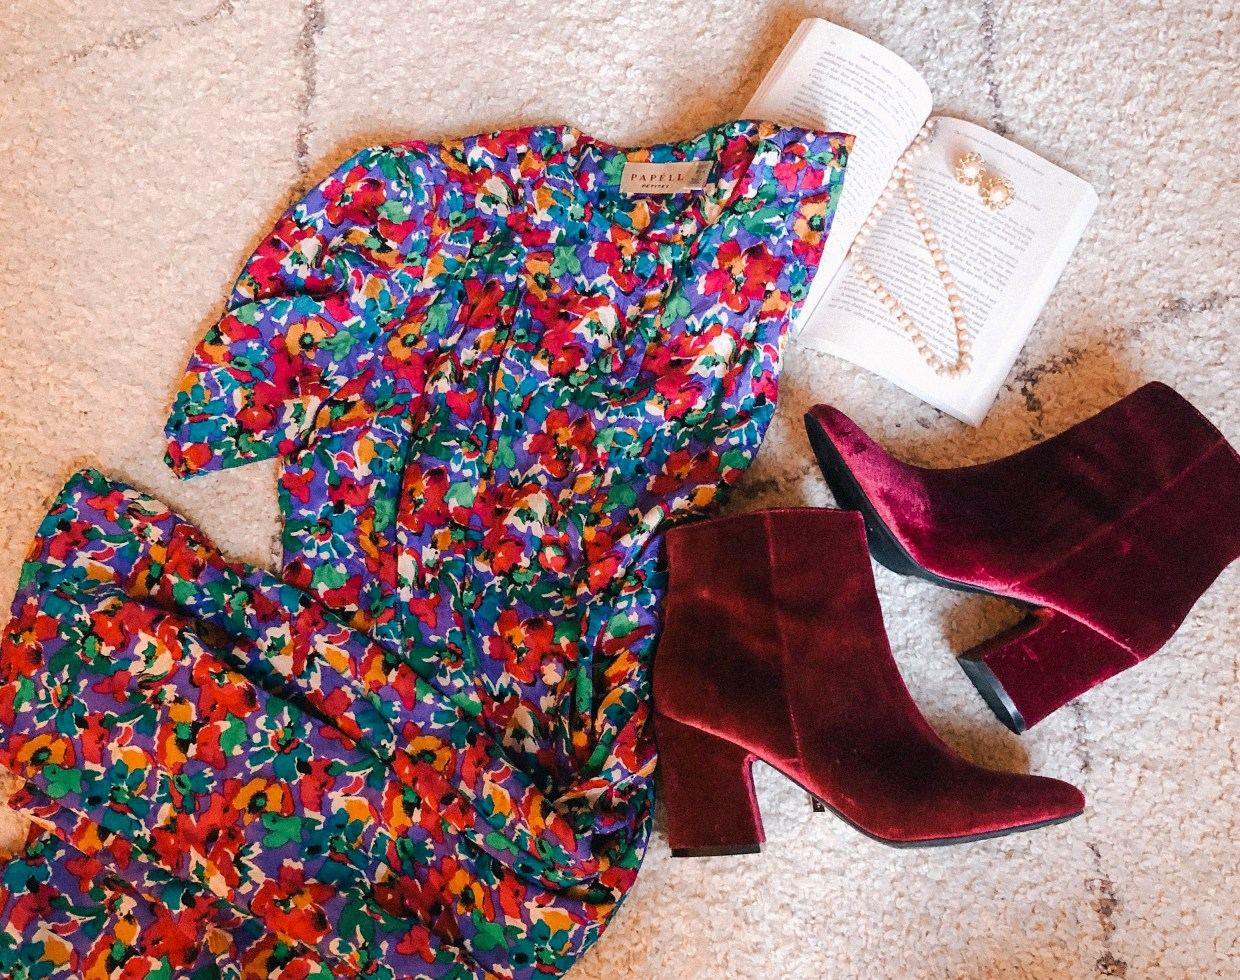 Thrifting Finds! Vintage Floral Dress and velvet booties!